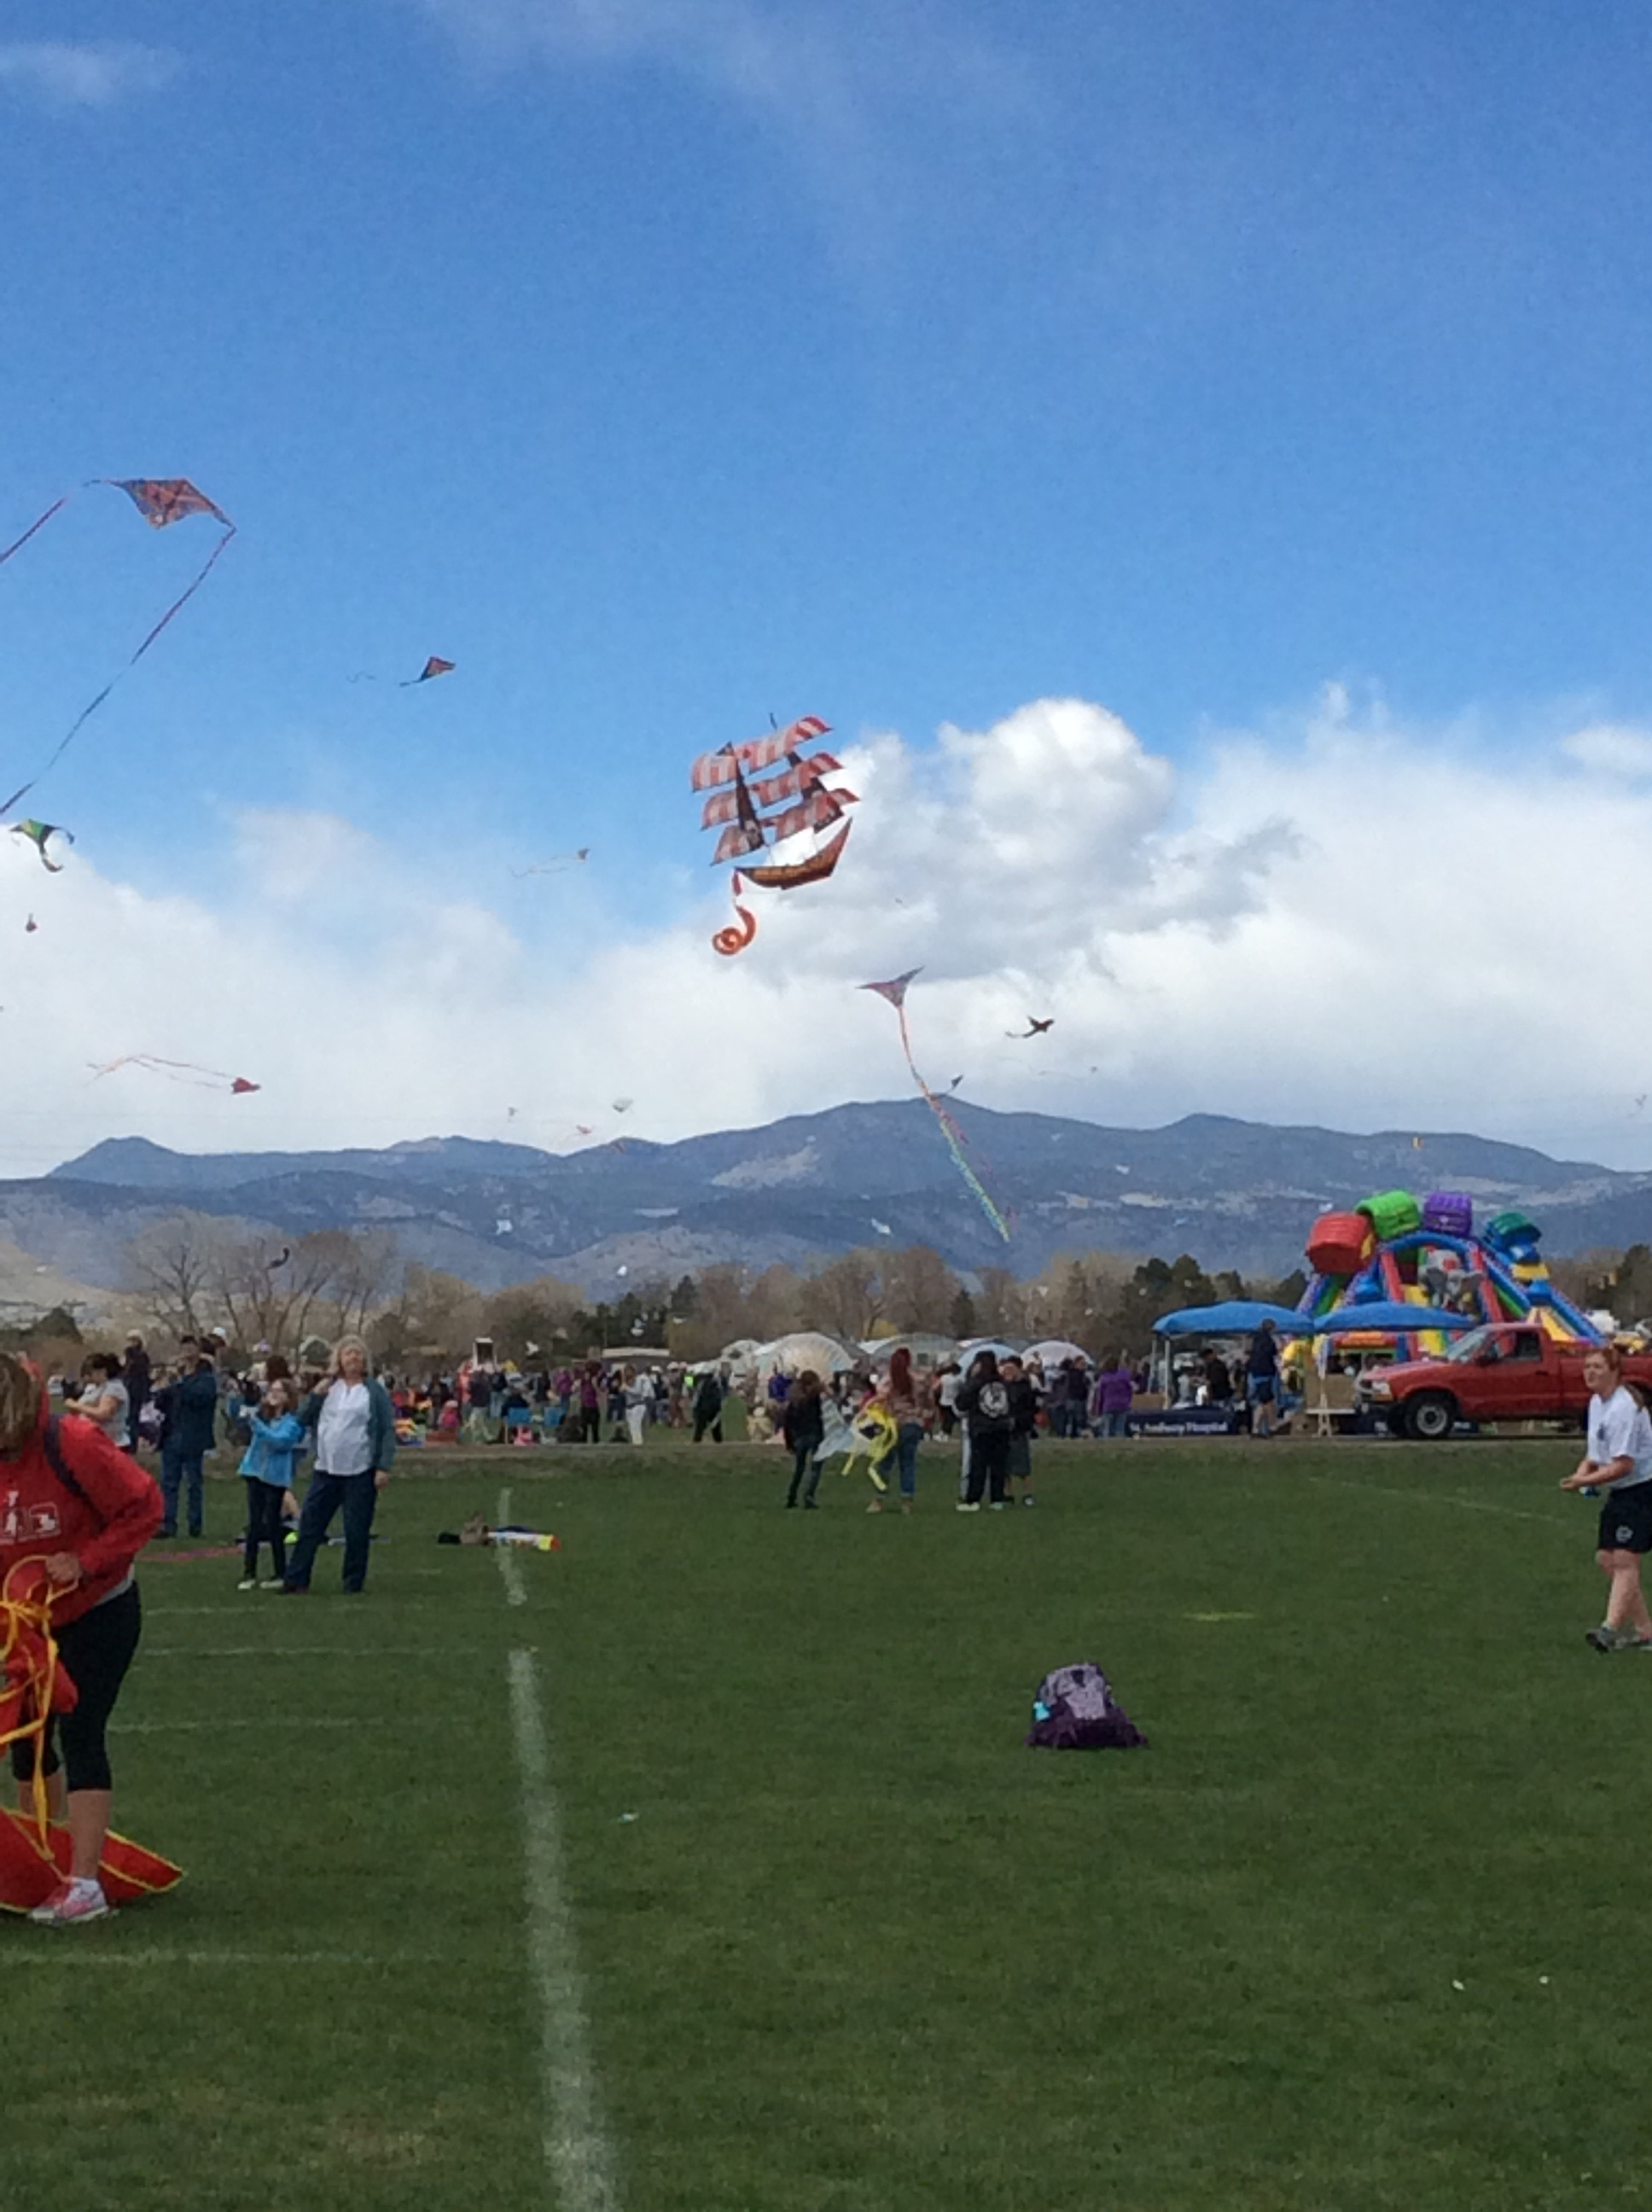 Arvada Kite Festival in April 2015. Source: City of Arvada CO, arvada.org.